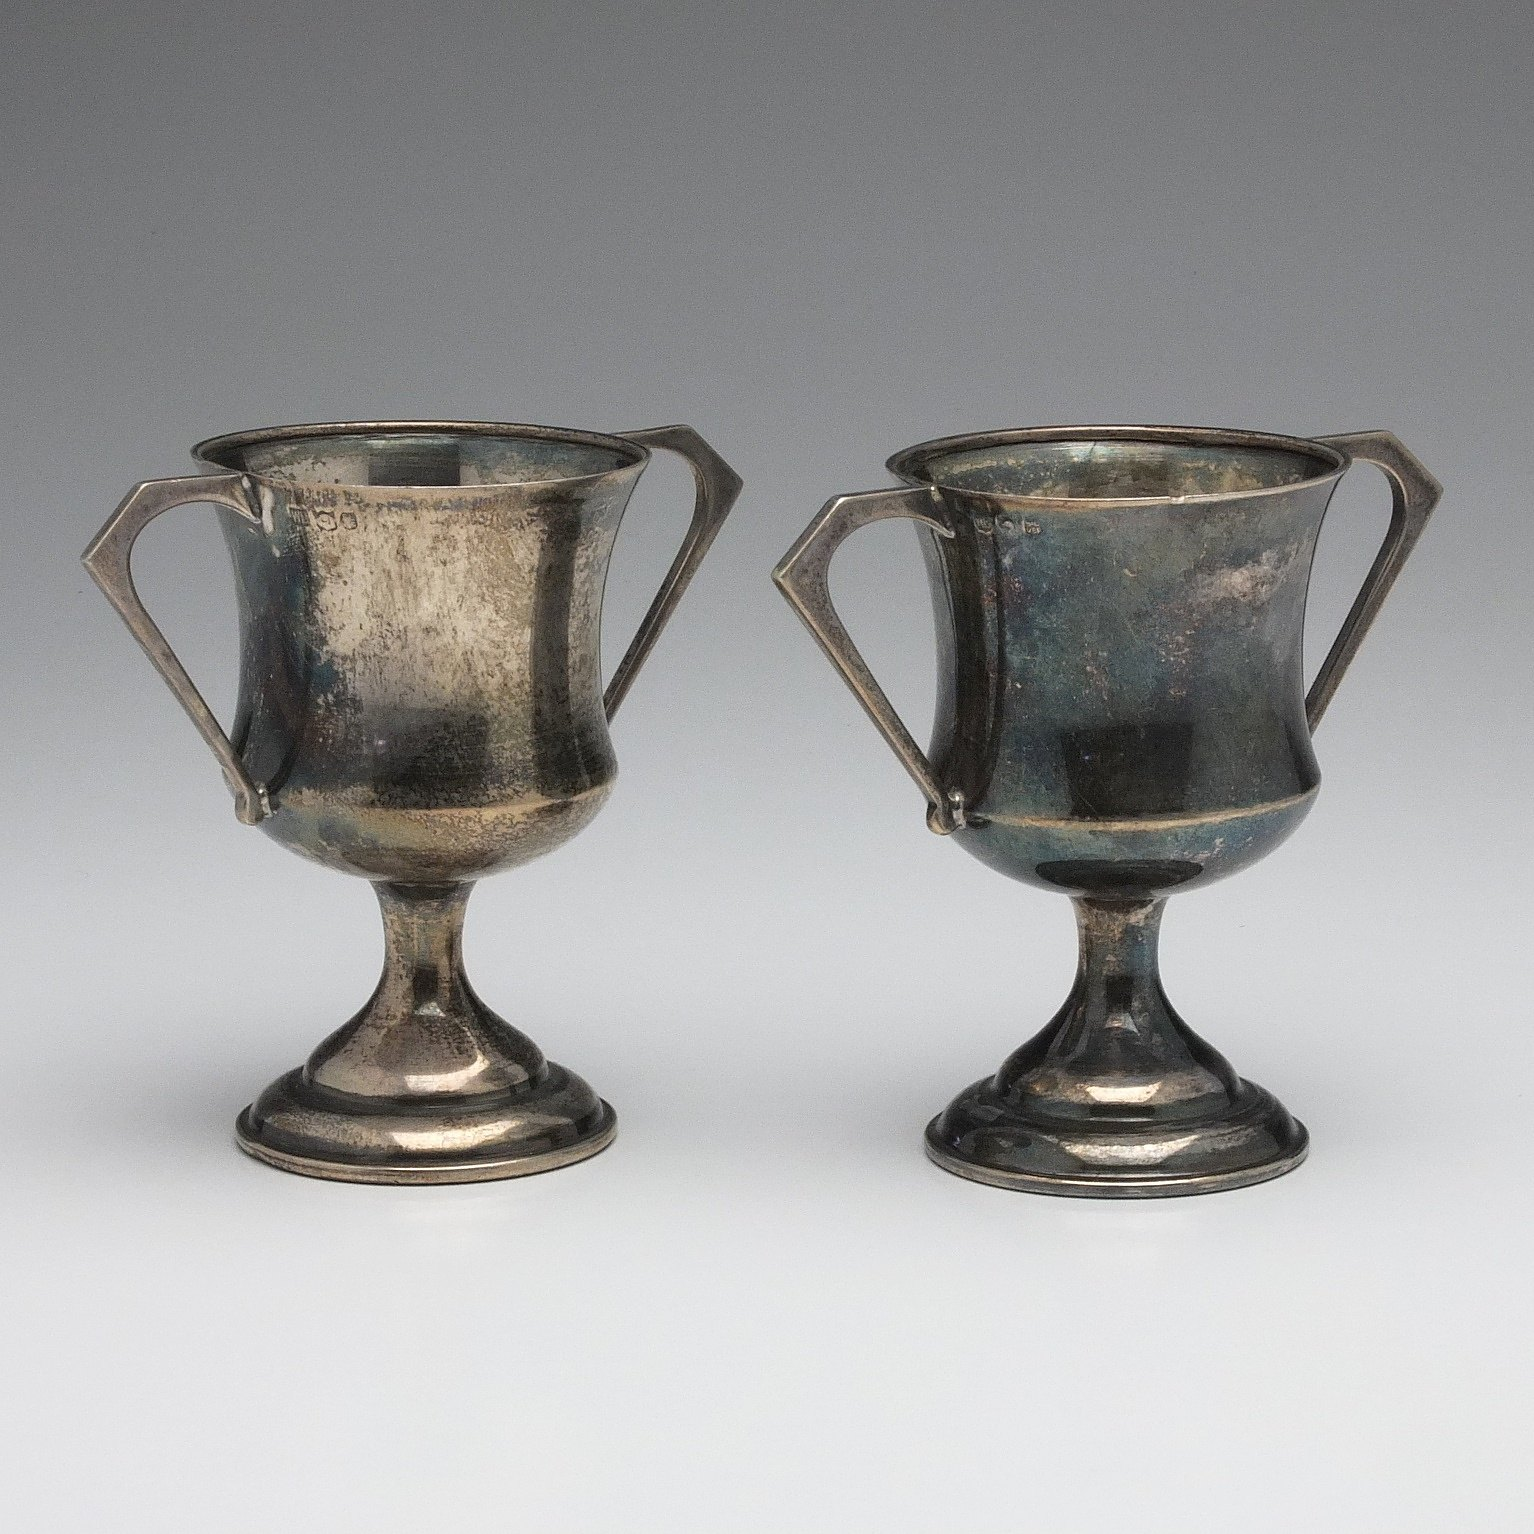 'Two Small Scottish Silver Trophies'